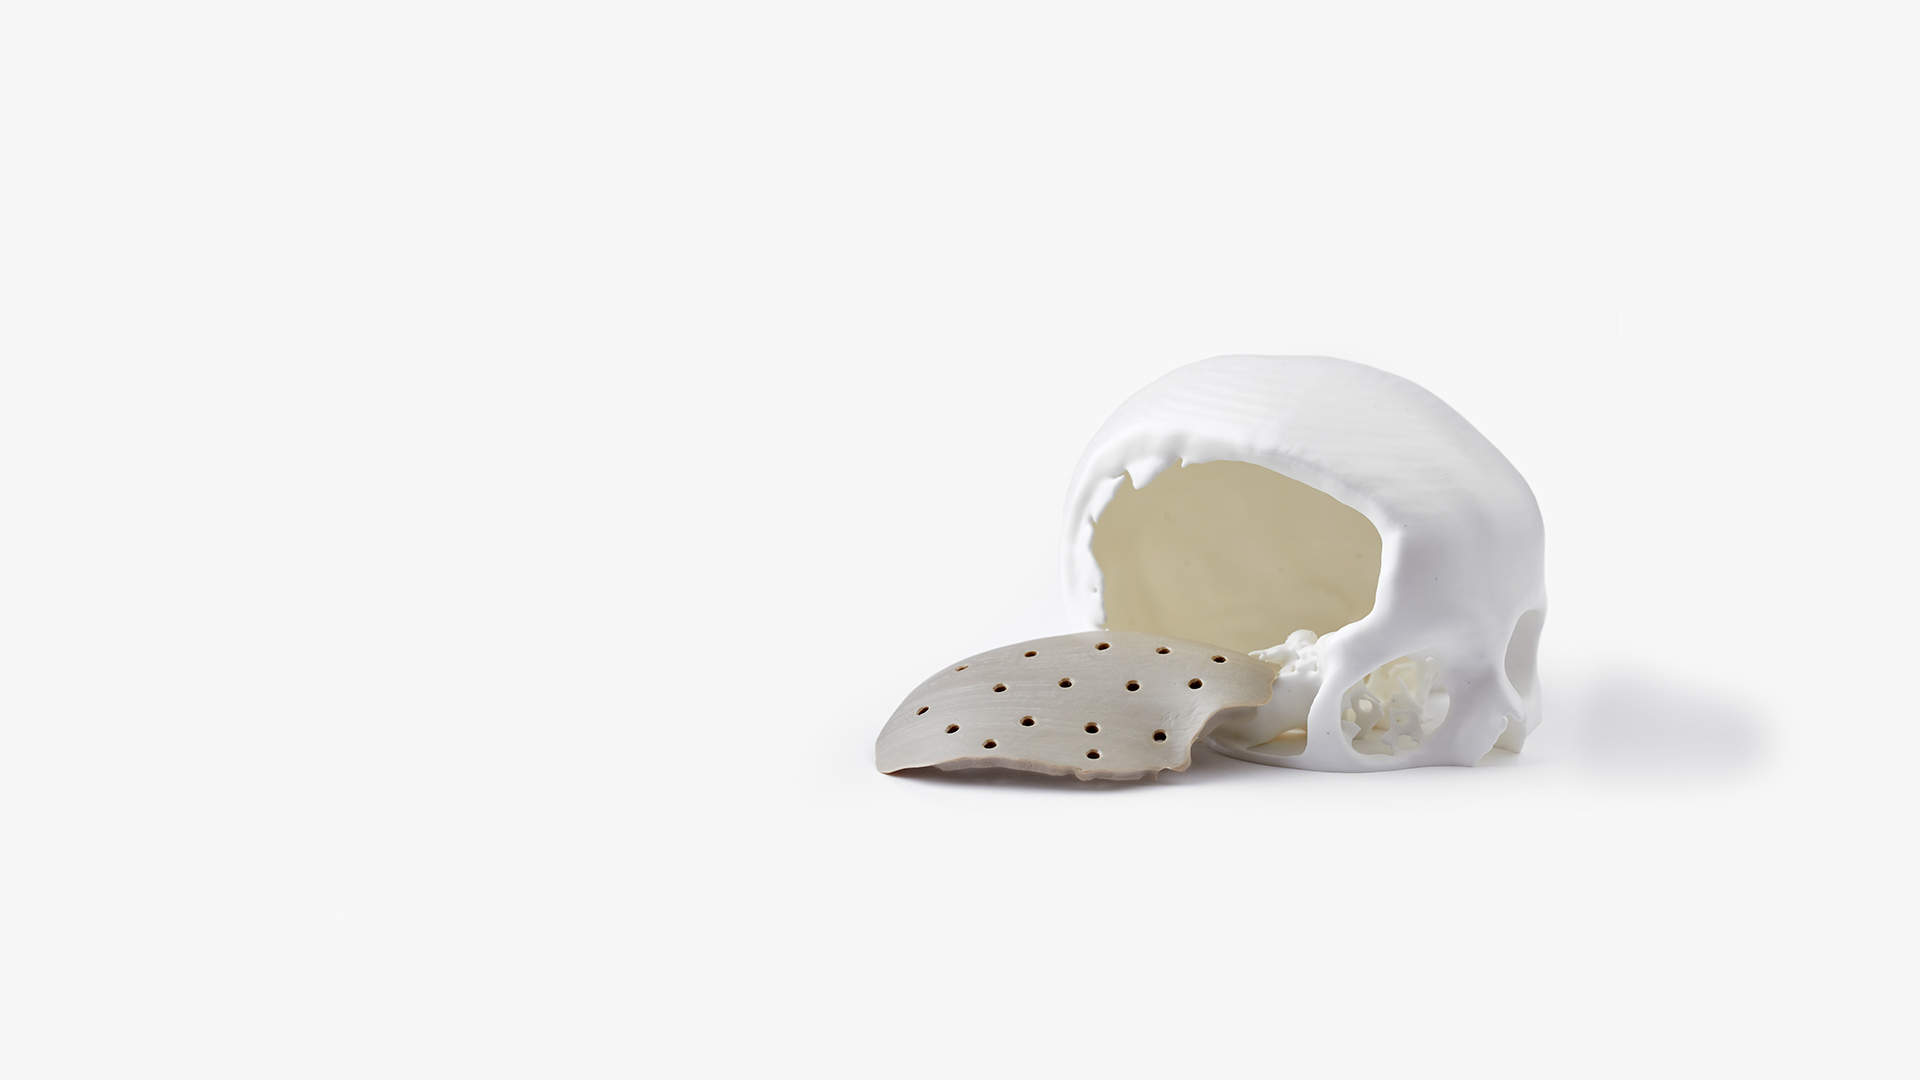 Open defect to the right side of a skull with fitting 3D-printed PEEK implant next to it